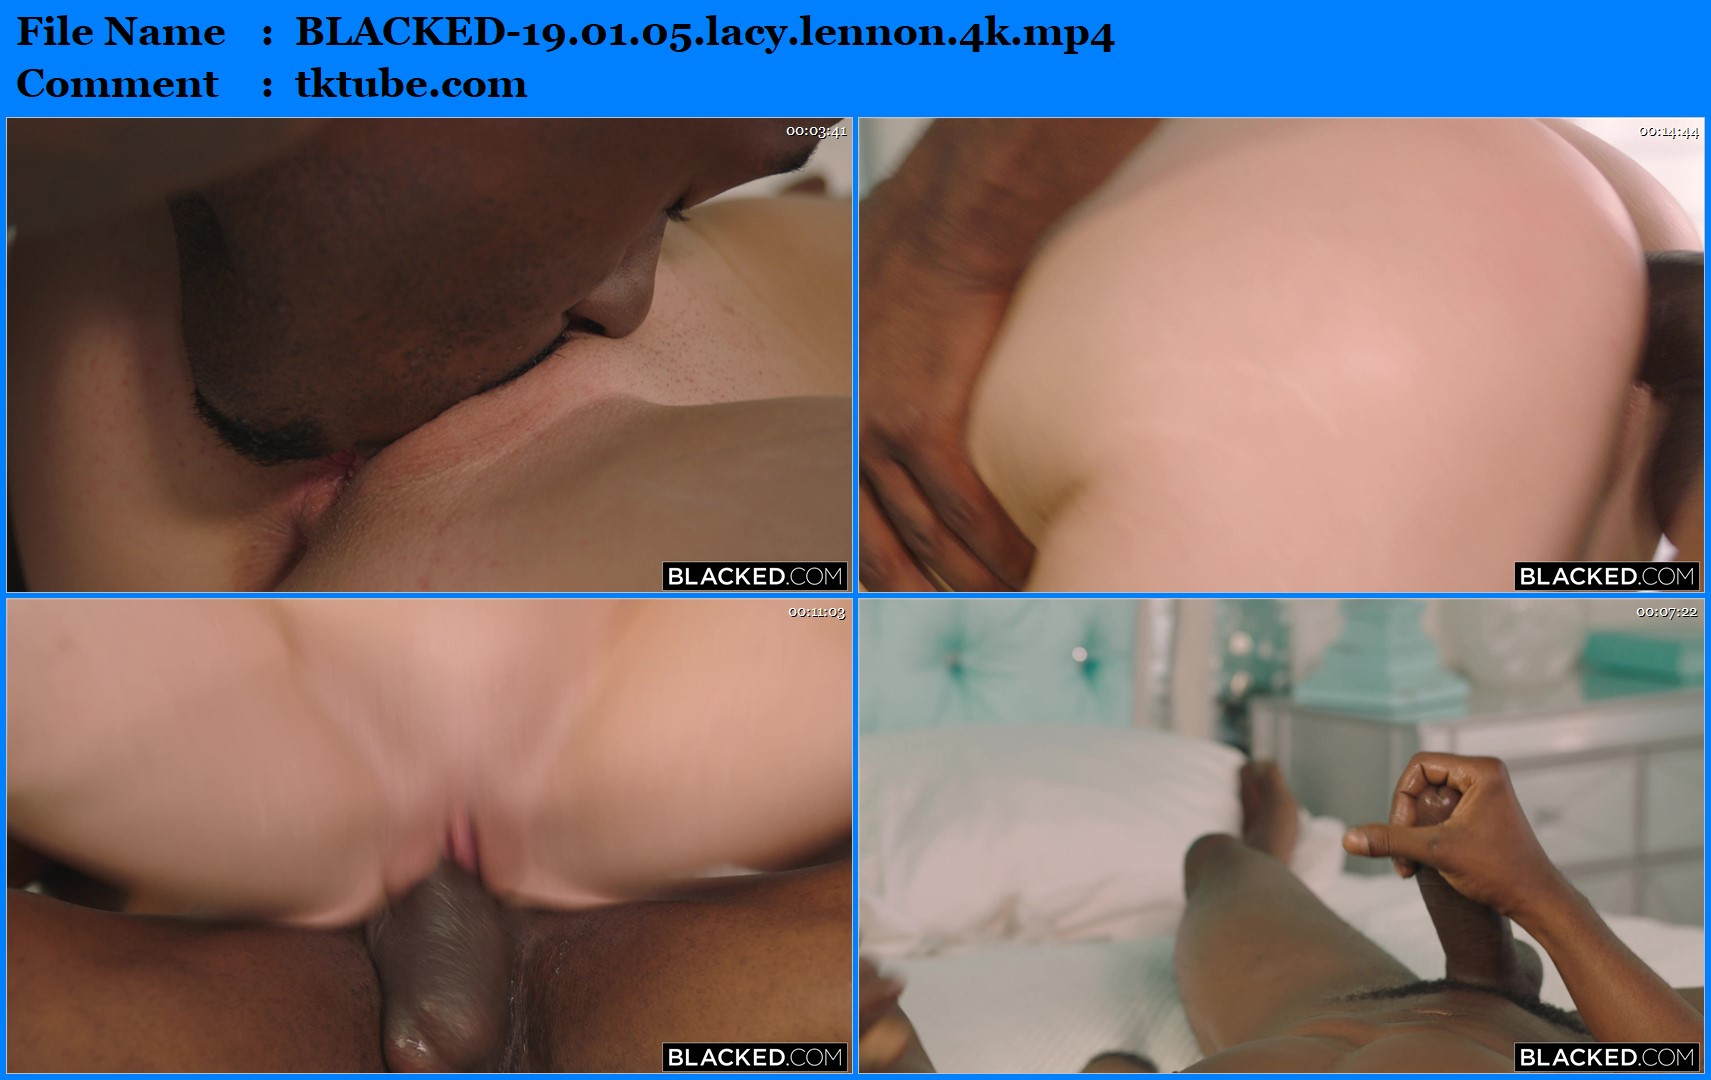 BLACKED-19.01.05.lacy.lennon.4k